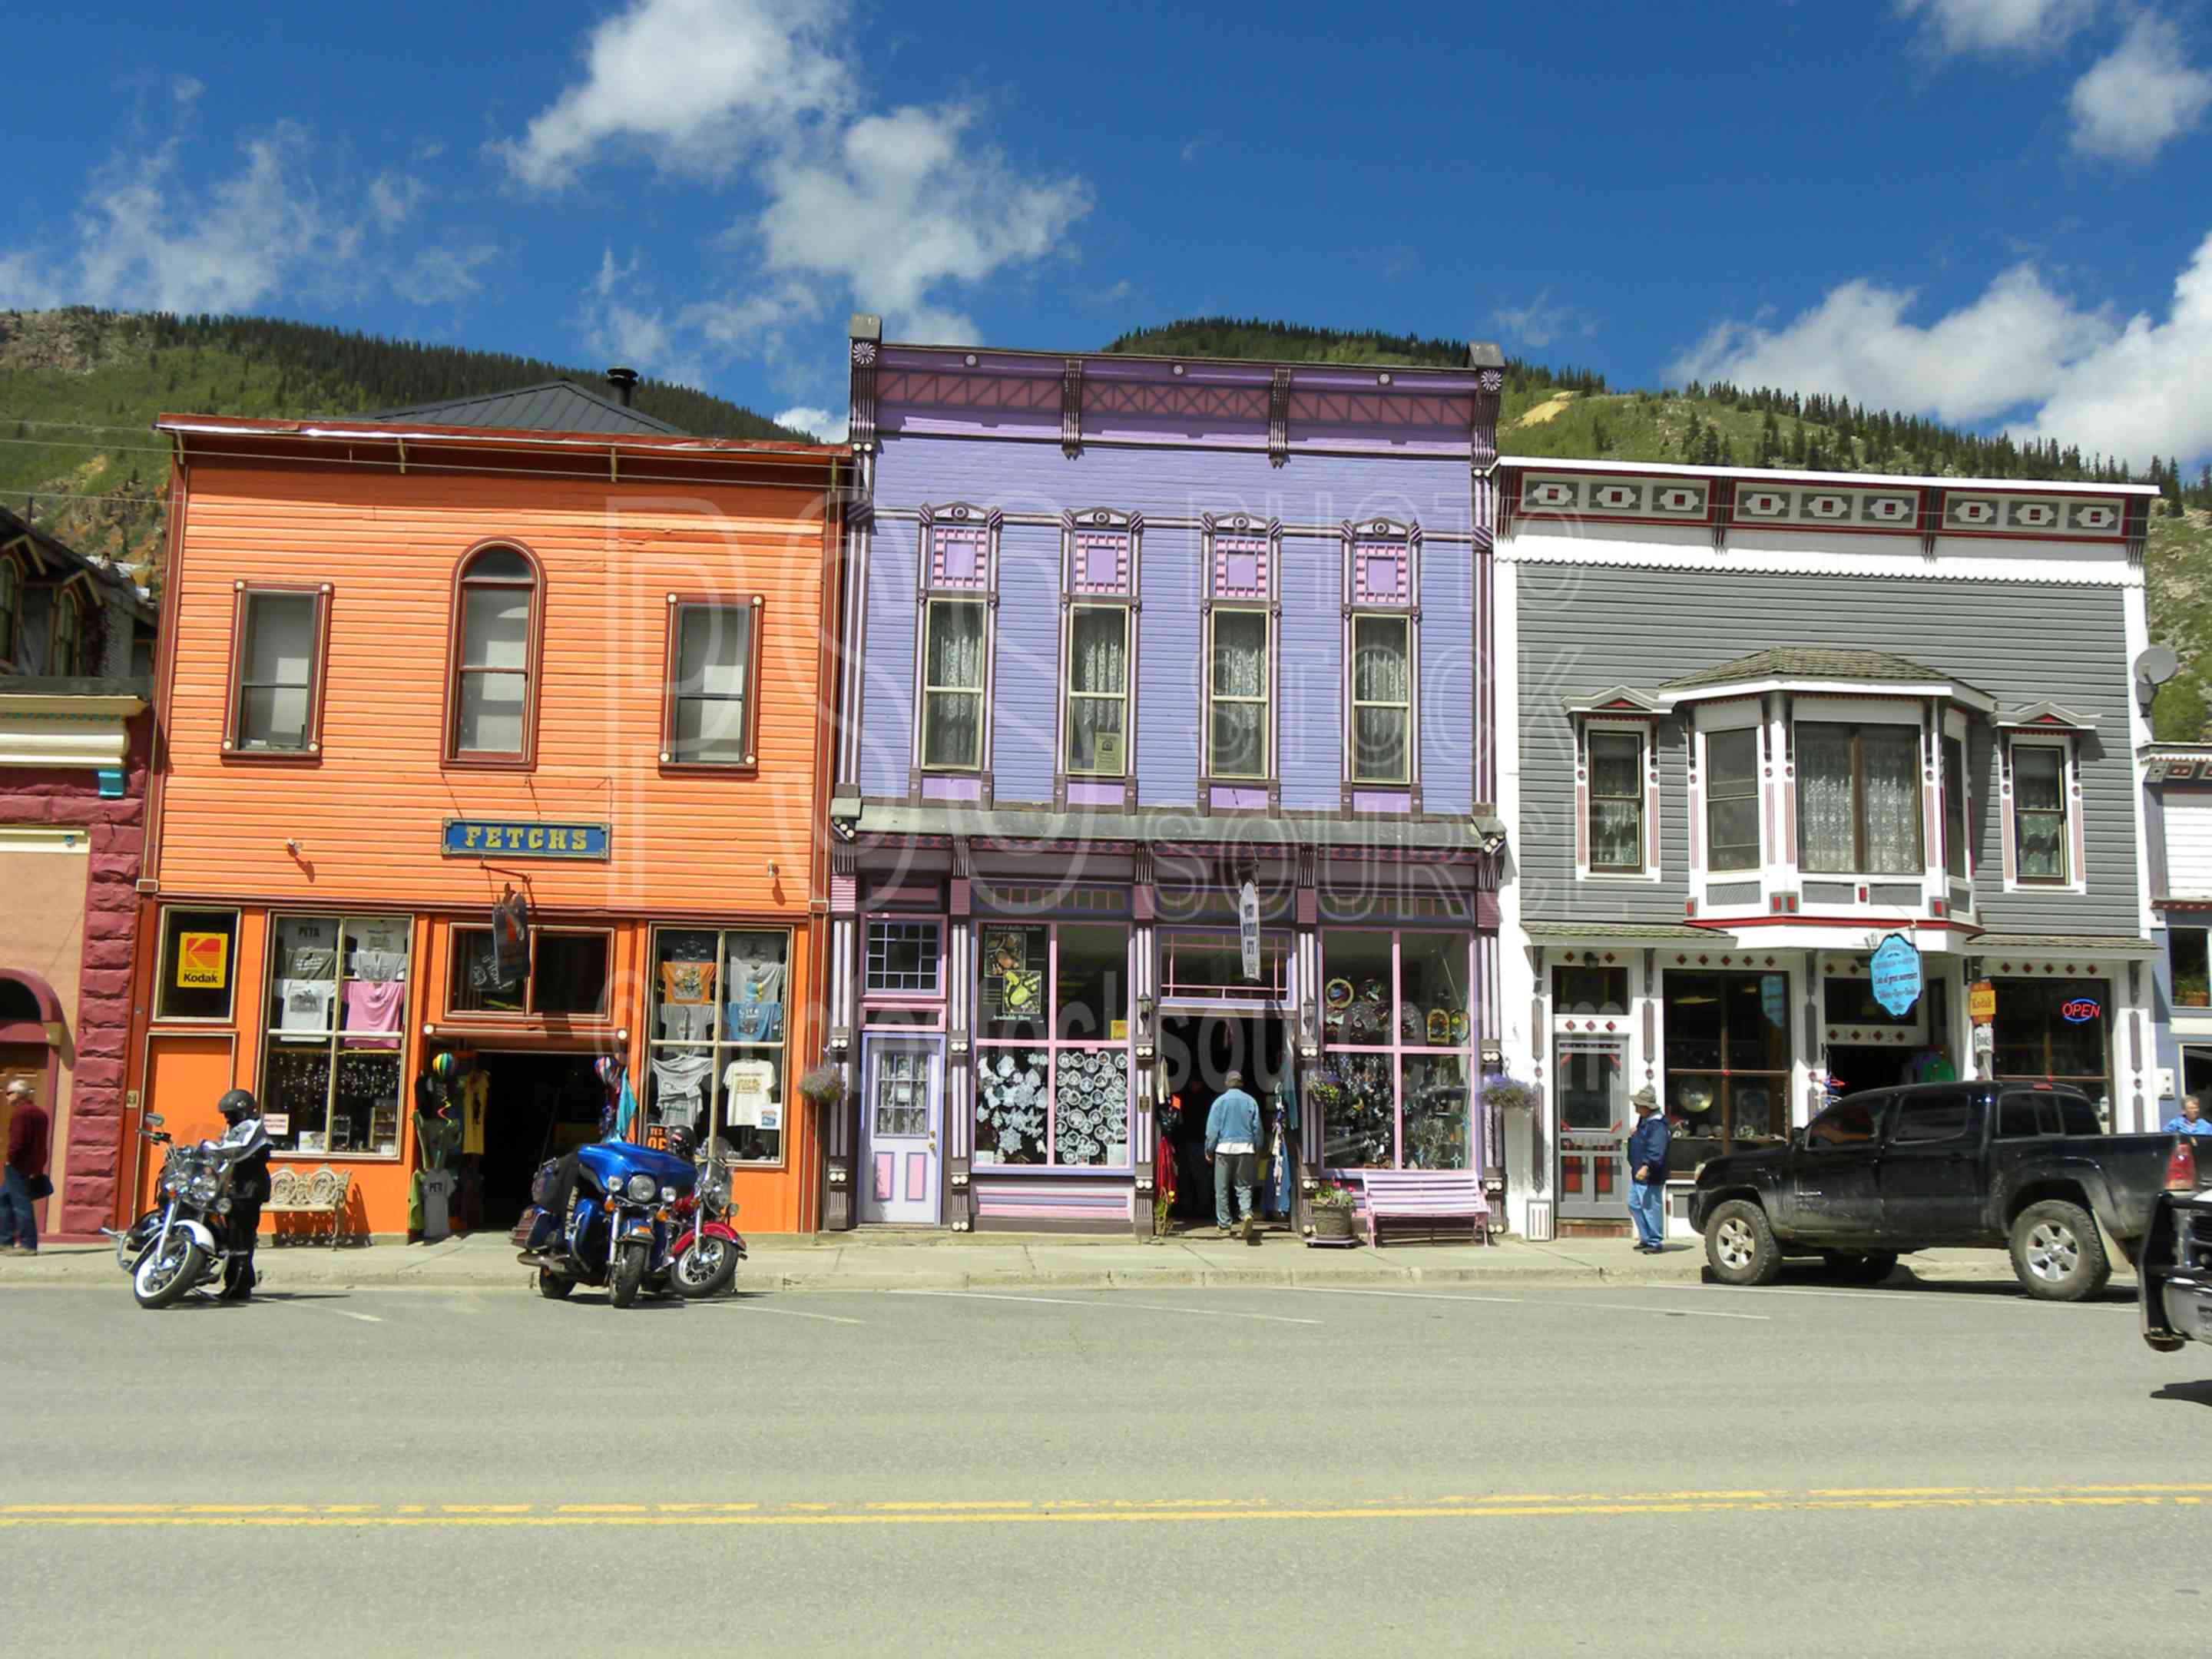 Downtown Silverton,mining,mining town,railroad,old west